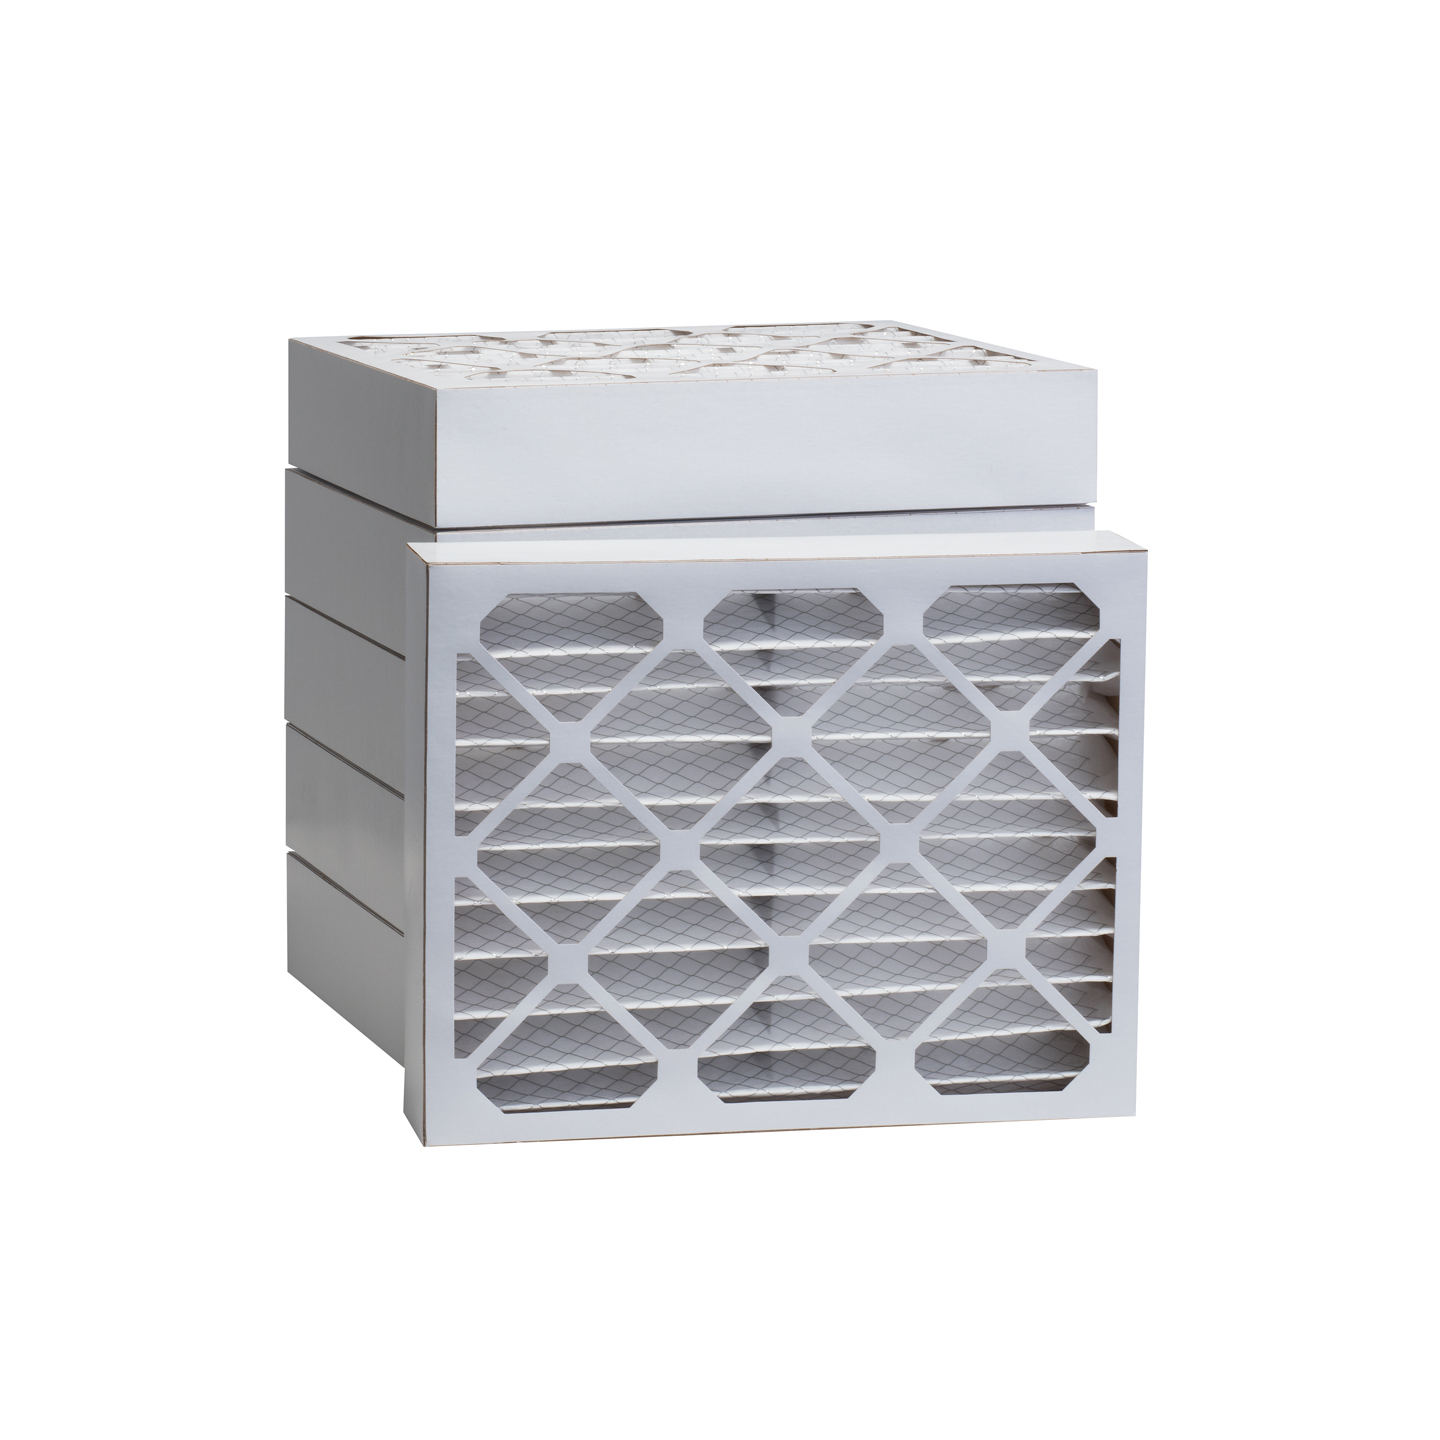 Tier1 20 x 22-1/4 x 4  MERV 8 - 6 Pack Air Filters (P85S-642022D) TIER1_P85S_642022D_6_PACK